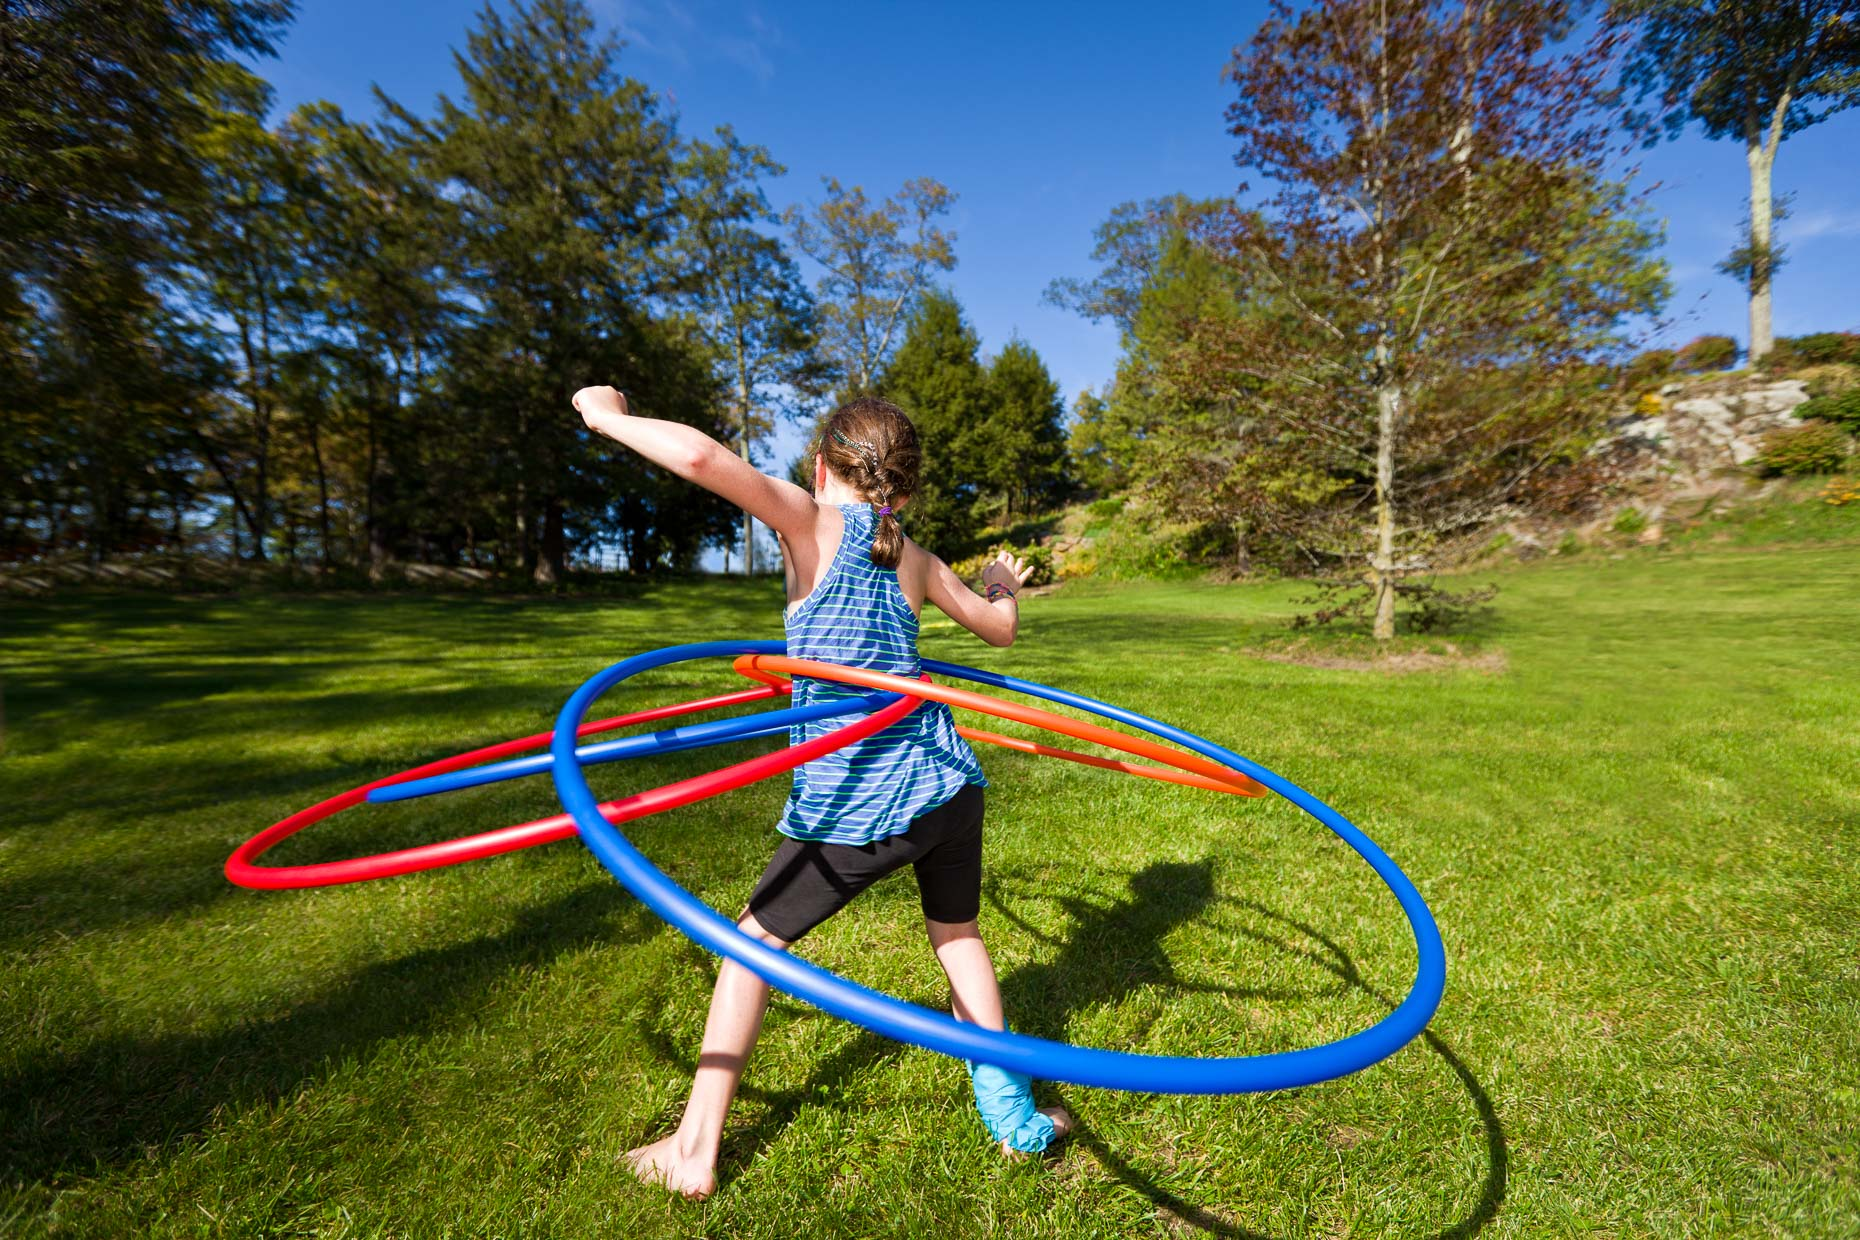 Young girl in park spinning four hula hoops on a sunny day